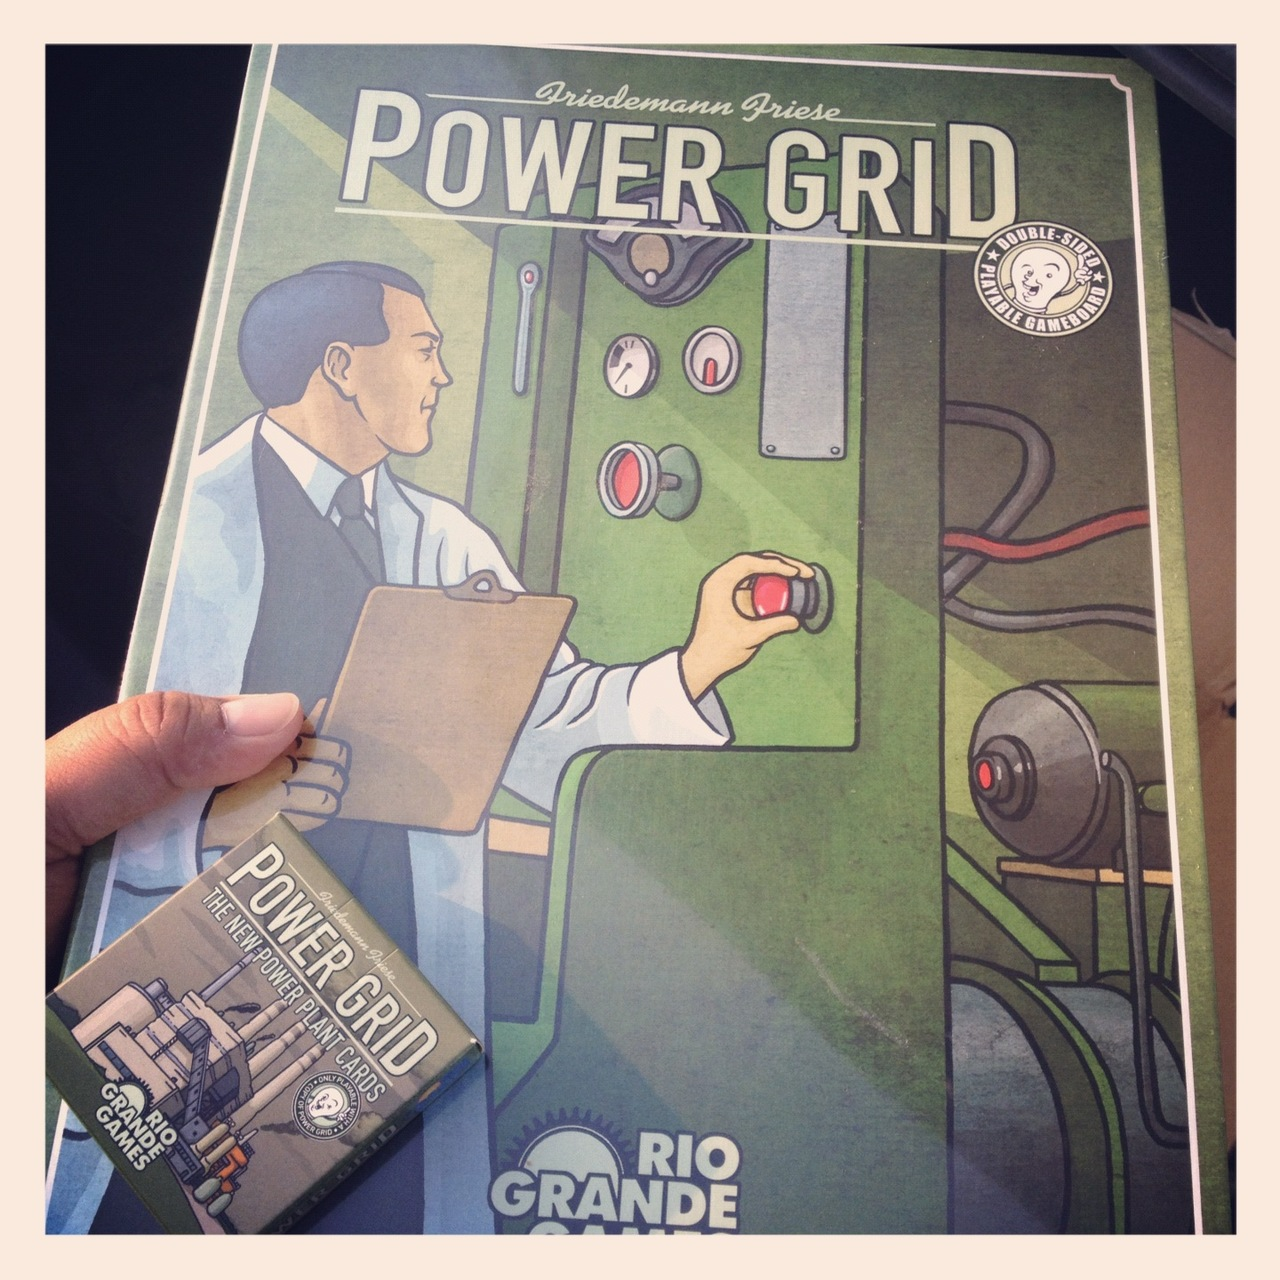 After years of putting off this purchase, I've finally gotten around to picking up a copy of Power Grid. A game, I've only played once but it left an amazing impression on me.  My friend Ted will be in town in a few days and I hope to get him to read the instructions before his visit so that we can play it with some friends I plan to have over on Saturday.